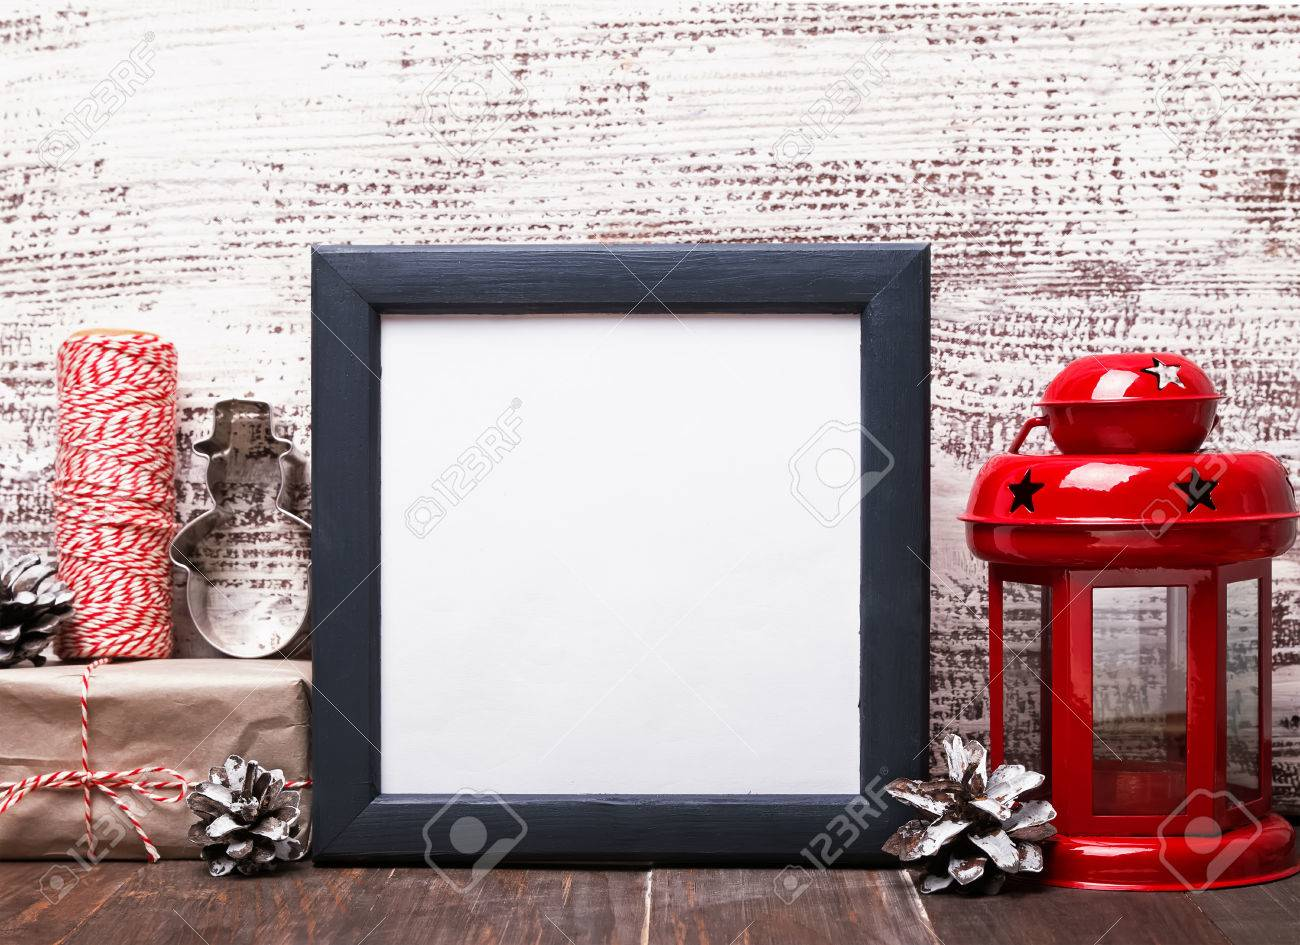 Blank Frame, Craft Style Christmas Decor And Red Lantern On The ...